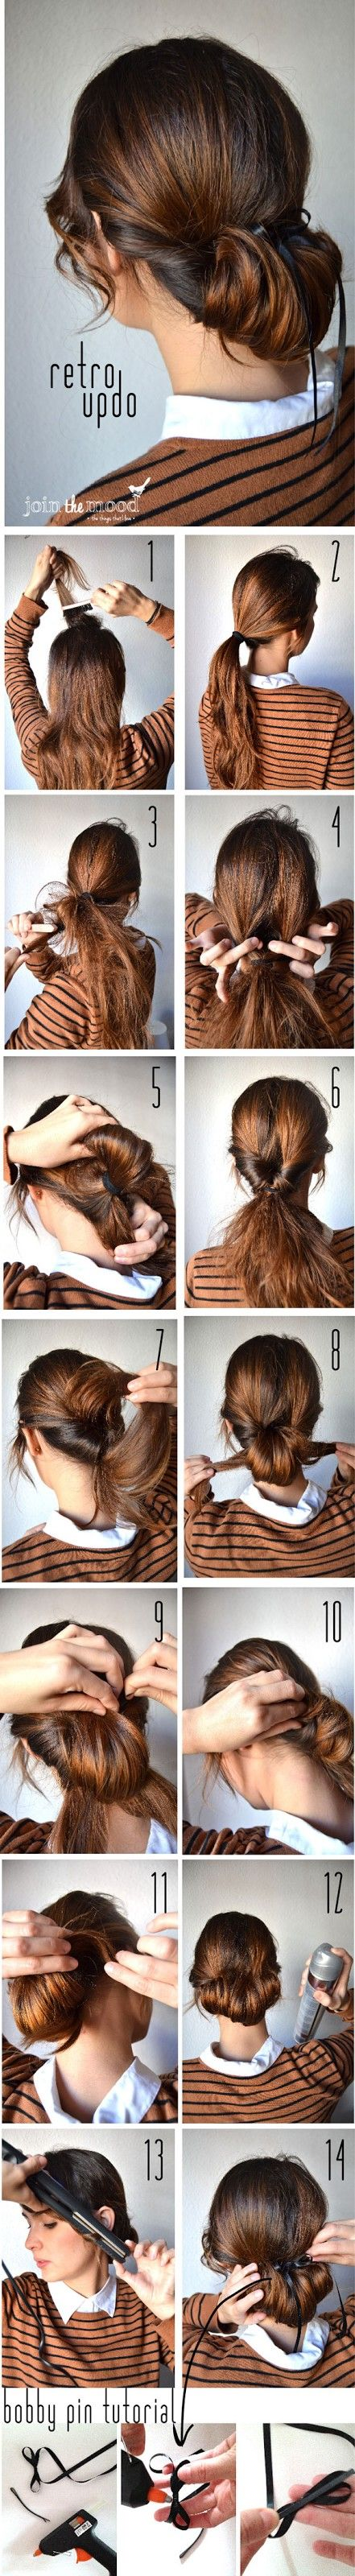 Gorgeous! Make A Retro UpDo | hairstyles tutorial - quick, cute, and easy! My three favorite things when it comes to hair!